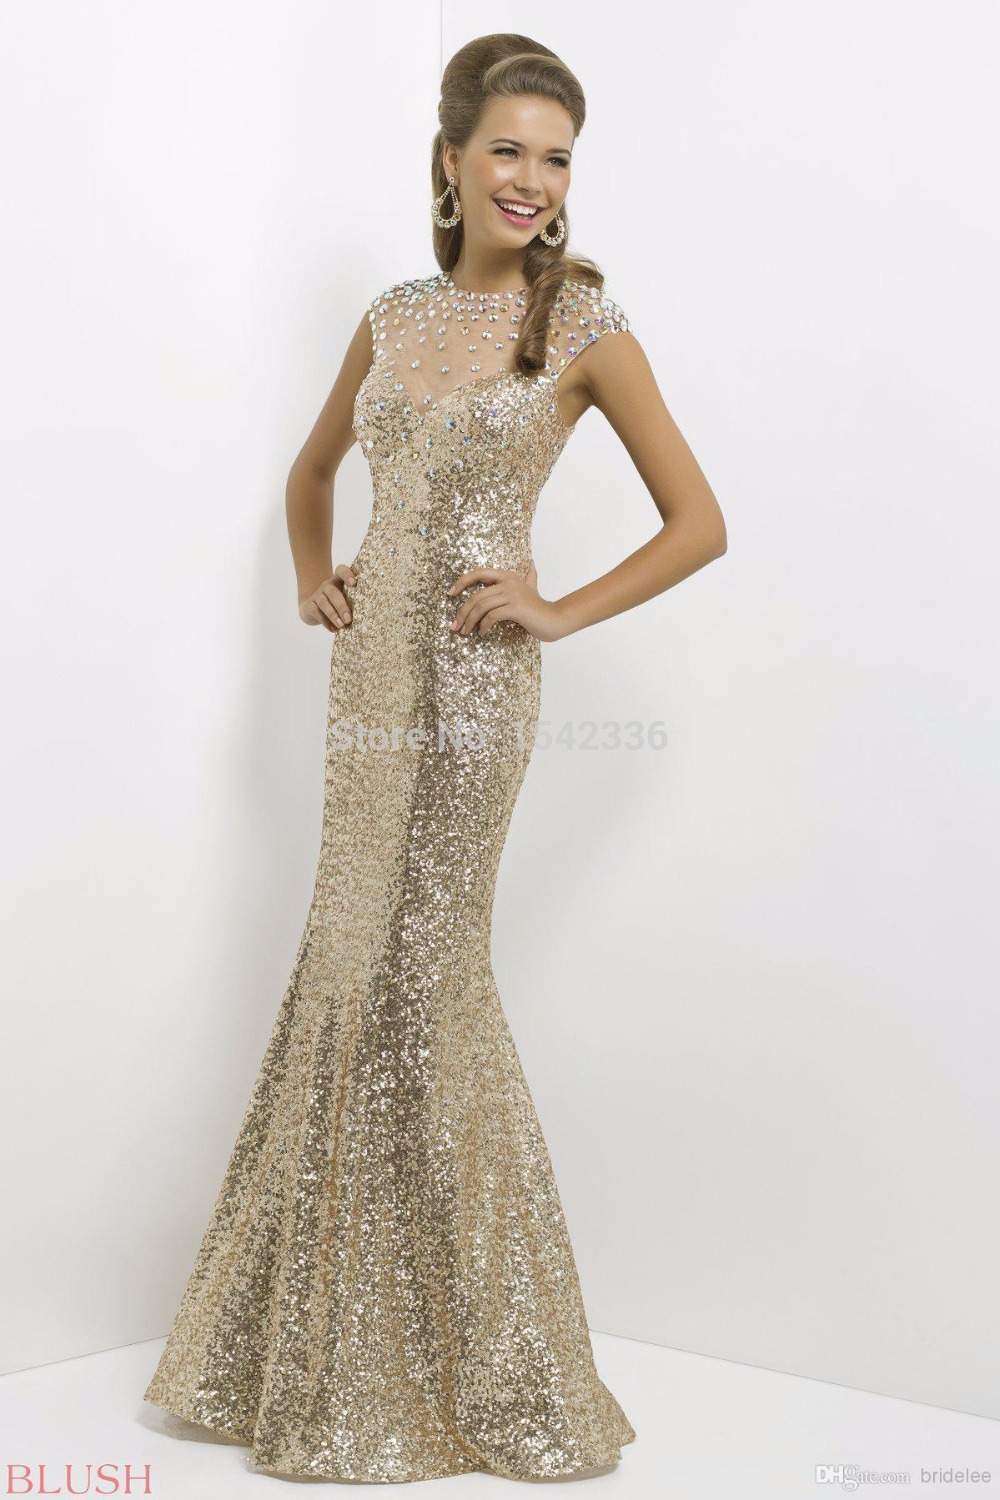 Images of Special Occasion Dresses For Women - Reikian